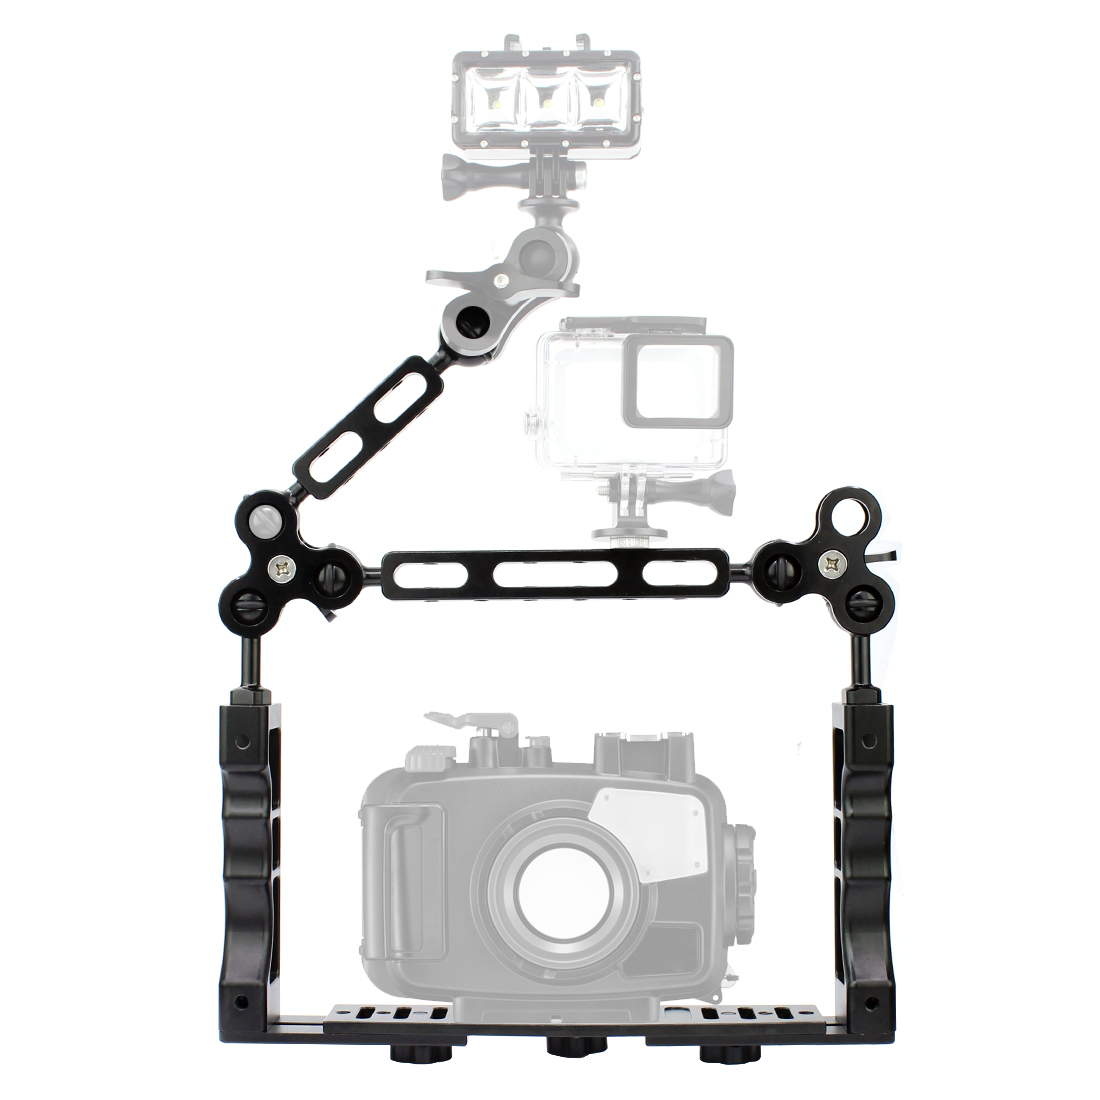 CNC Scuba Diving Underwater Light Arm System Triple Clamp Tray Bracket Handle Grip Stabilizer Rig for